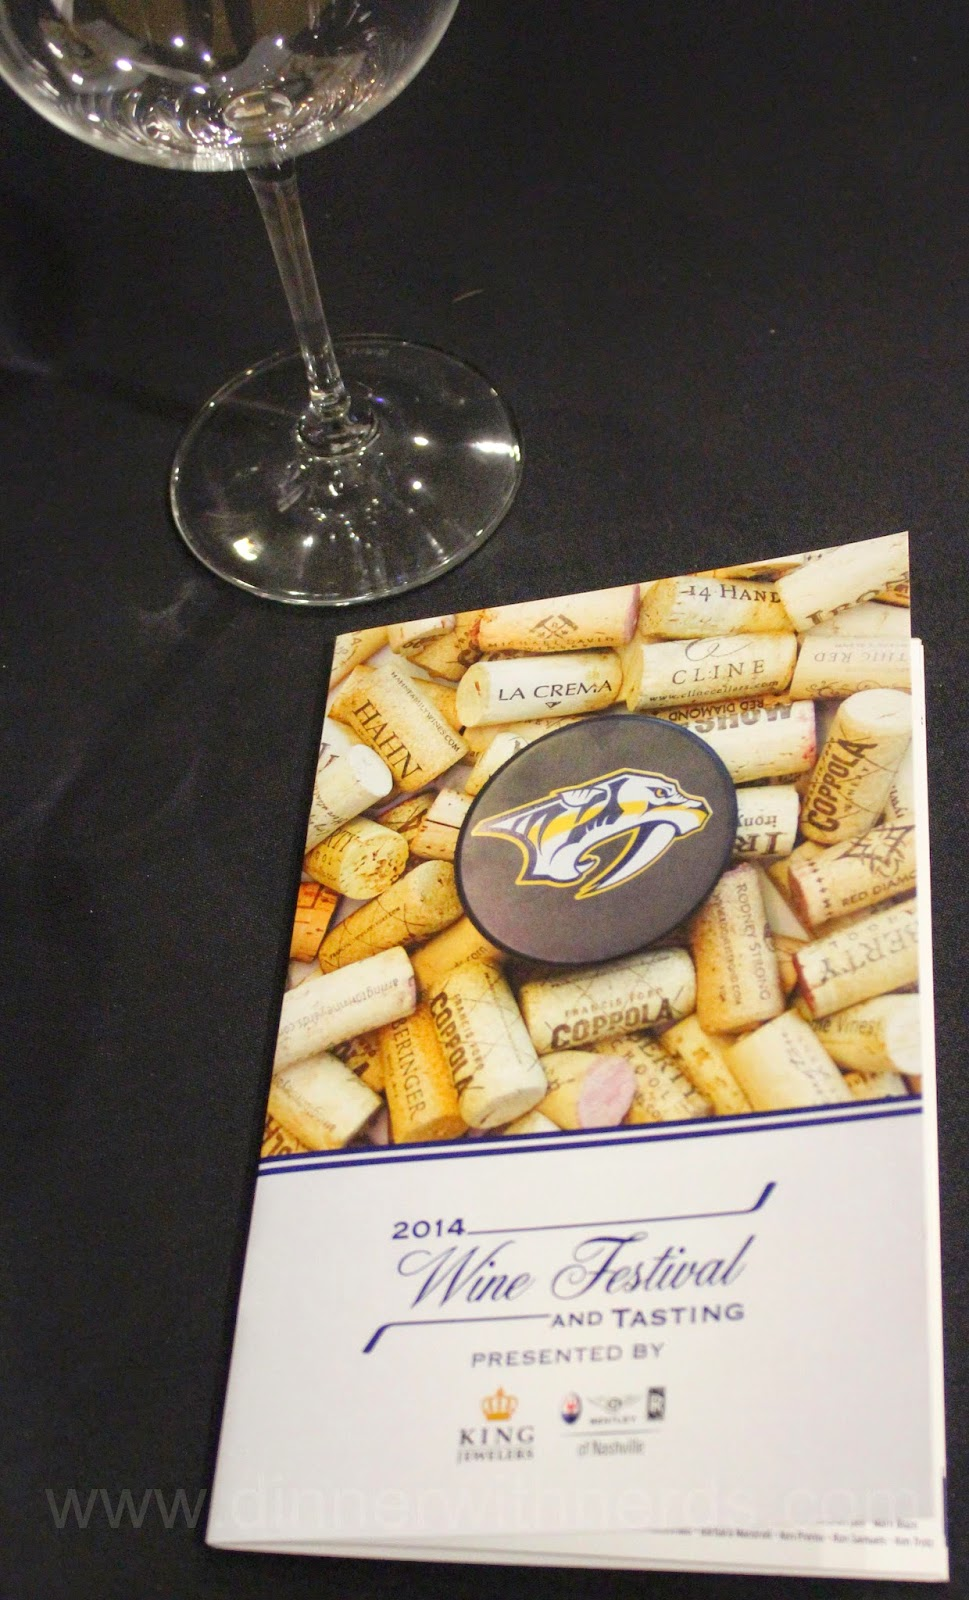 Nashville Predators Foundation Wine Tasting